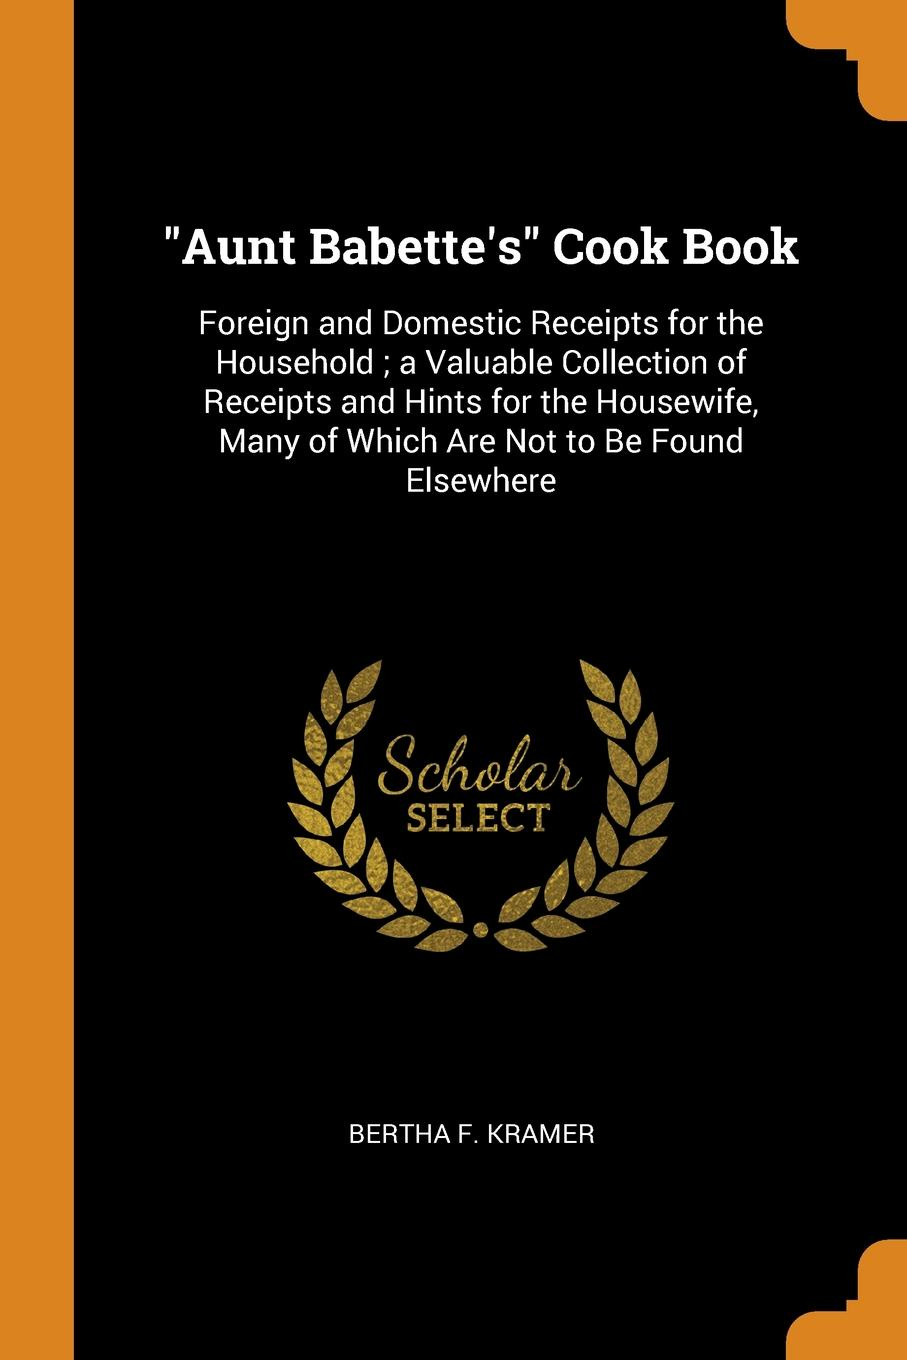 """Bertha F. Kramer. """"Aunt Babette.s"""" Cook Book. Foreign and Domestic Receipts for the Household ; a Valuable Collection of Receipts and Hints for the Housewife, Many of Which Are Not to Be Found Elsewhere"""